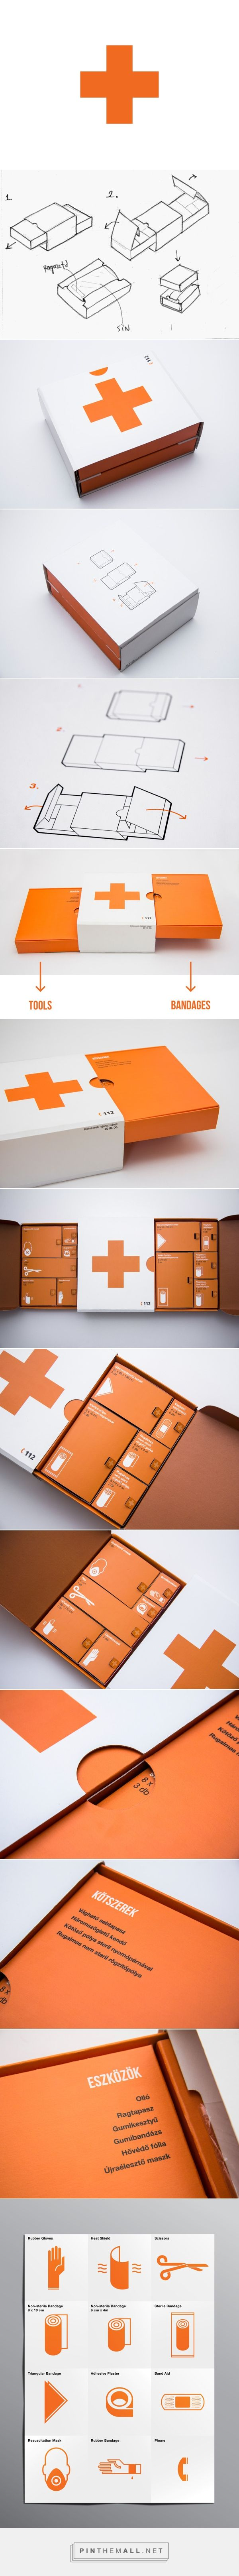 First Aid Kit | Kevin Harald Campean